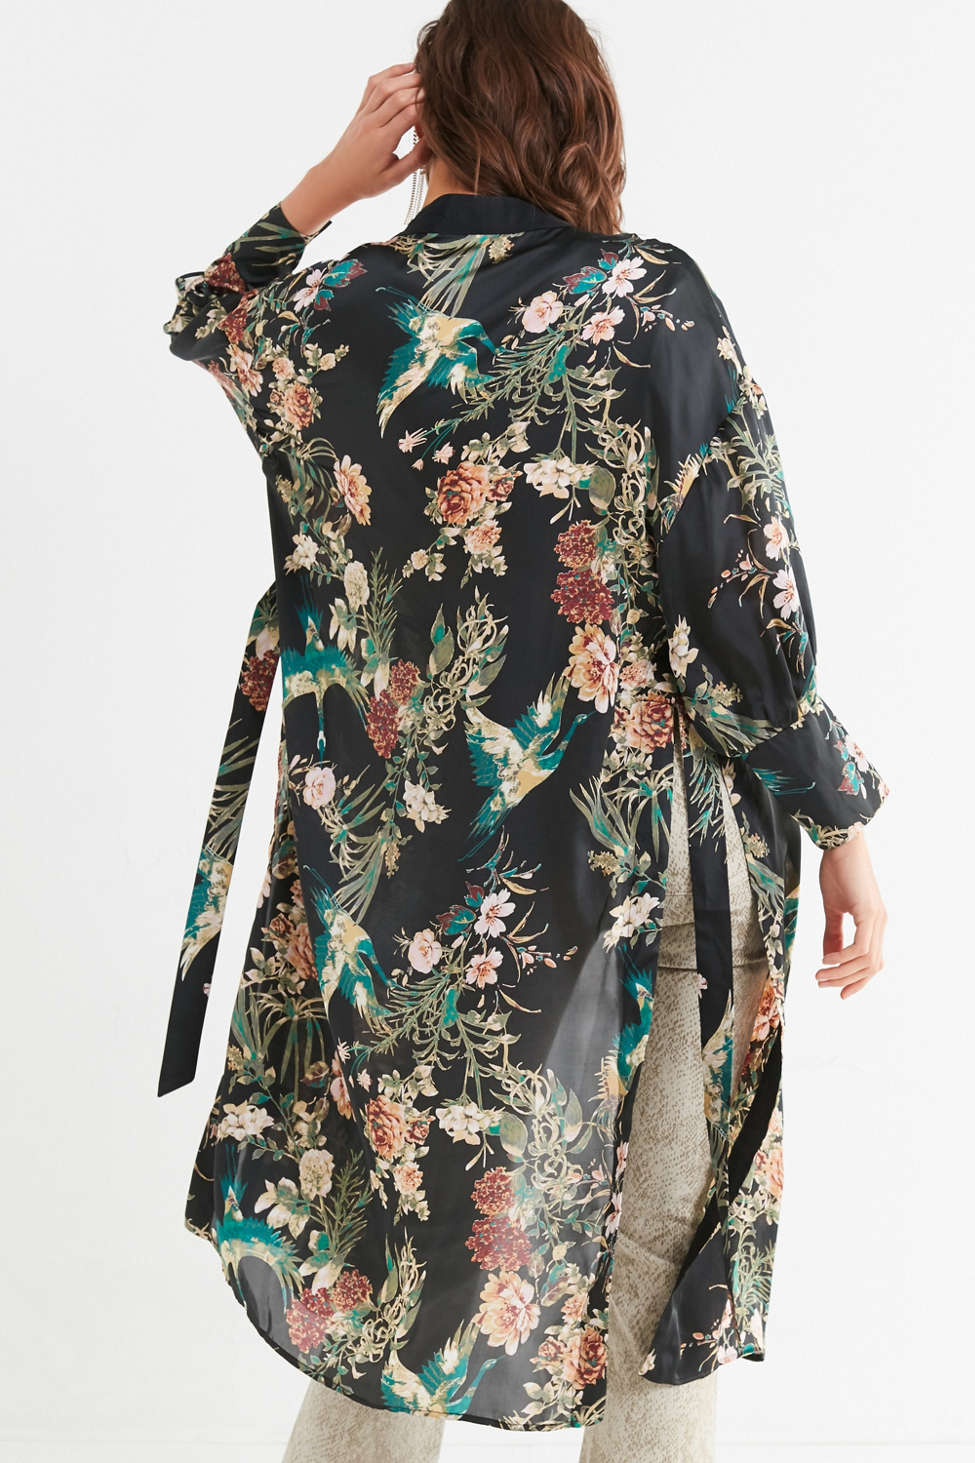 Slide View: 2: Cinched Sleeve Floral Kimono